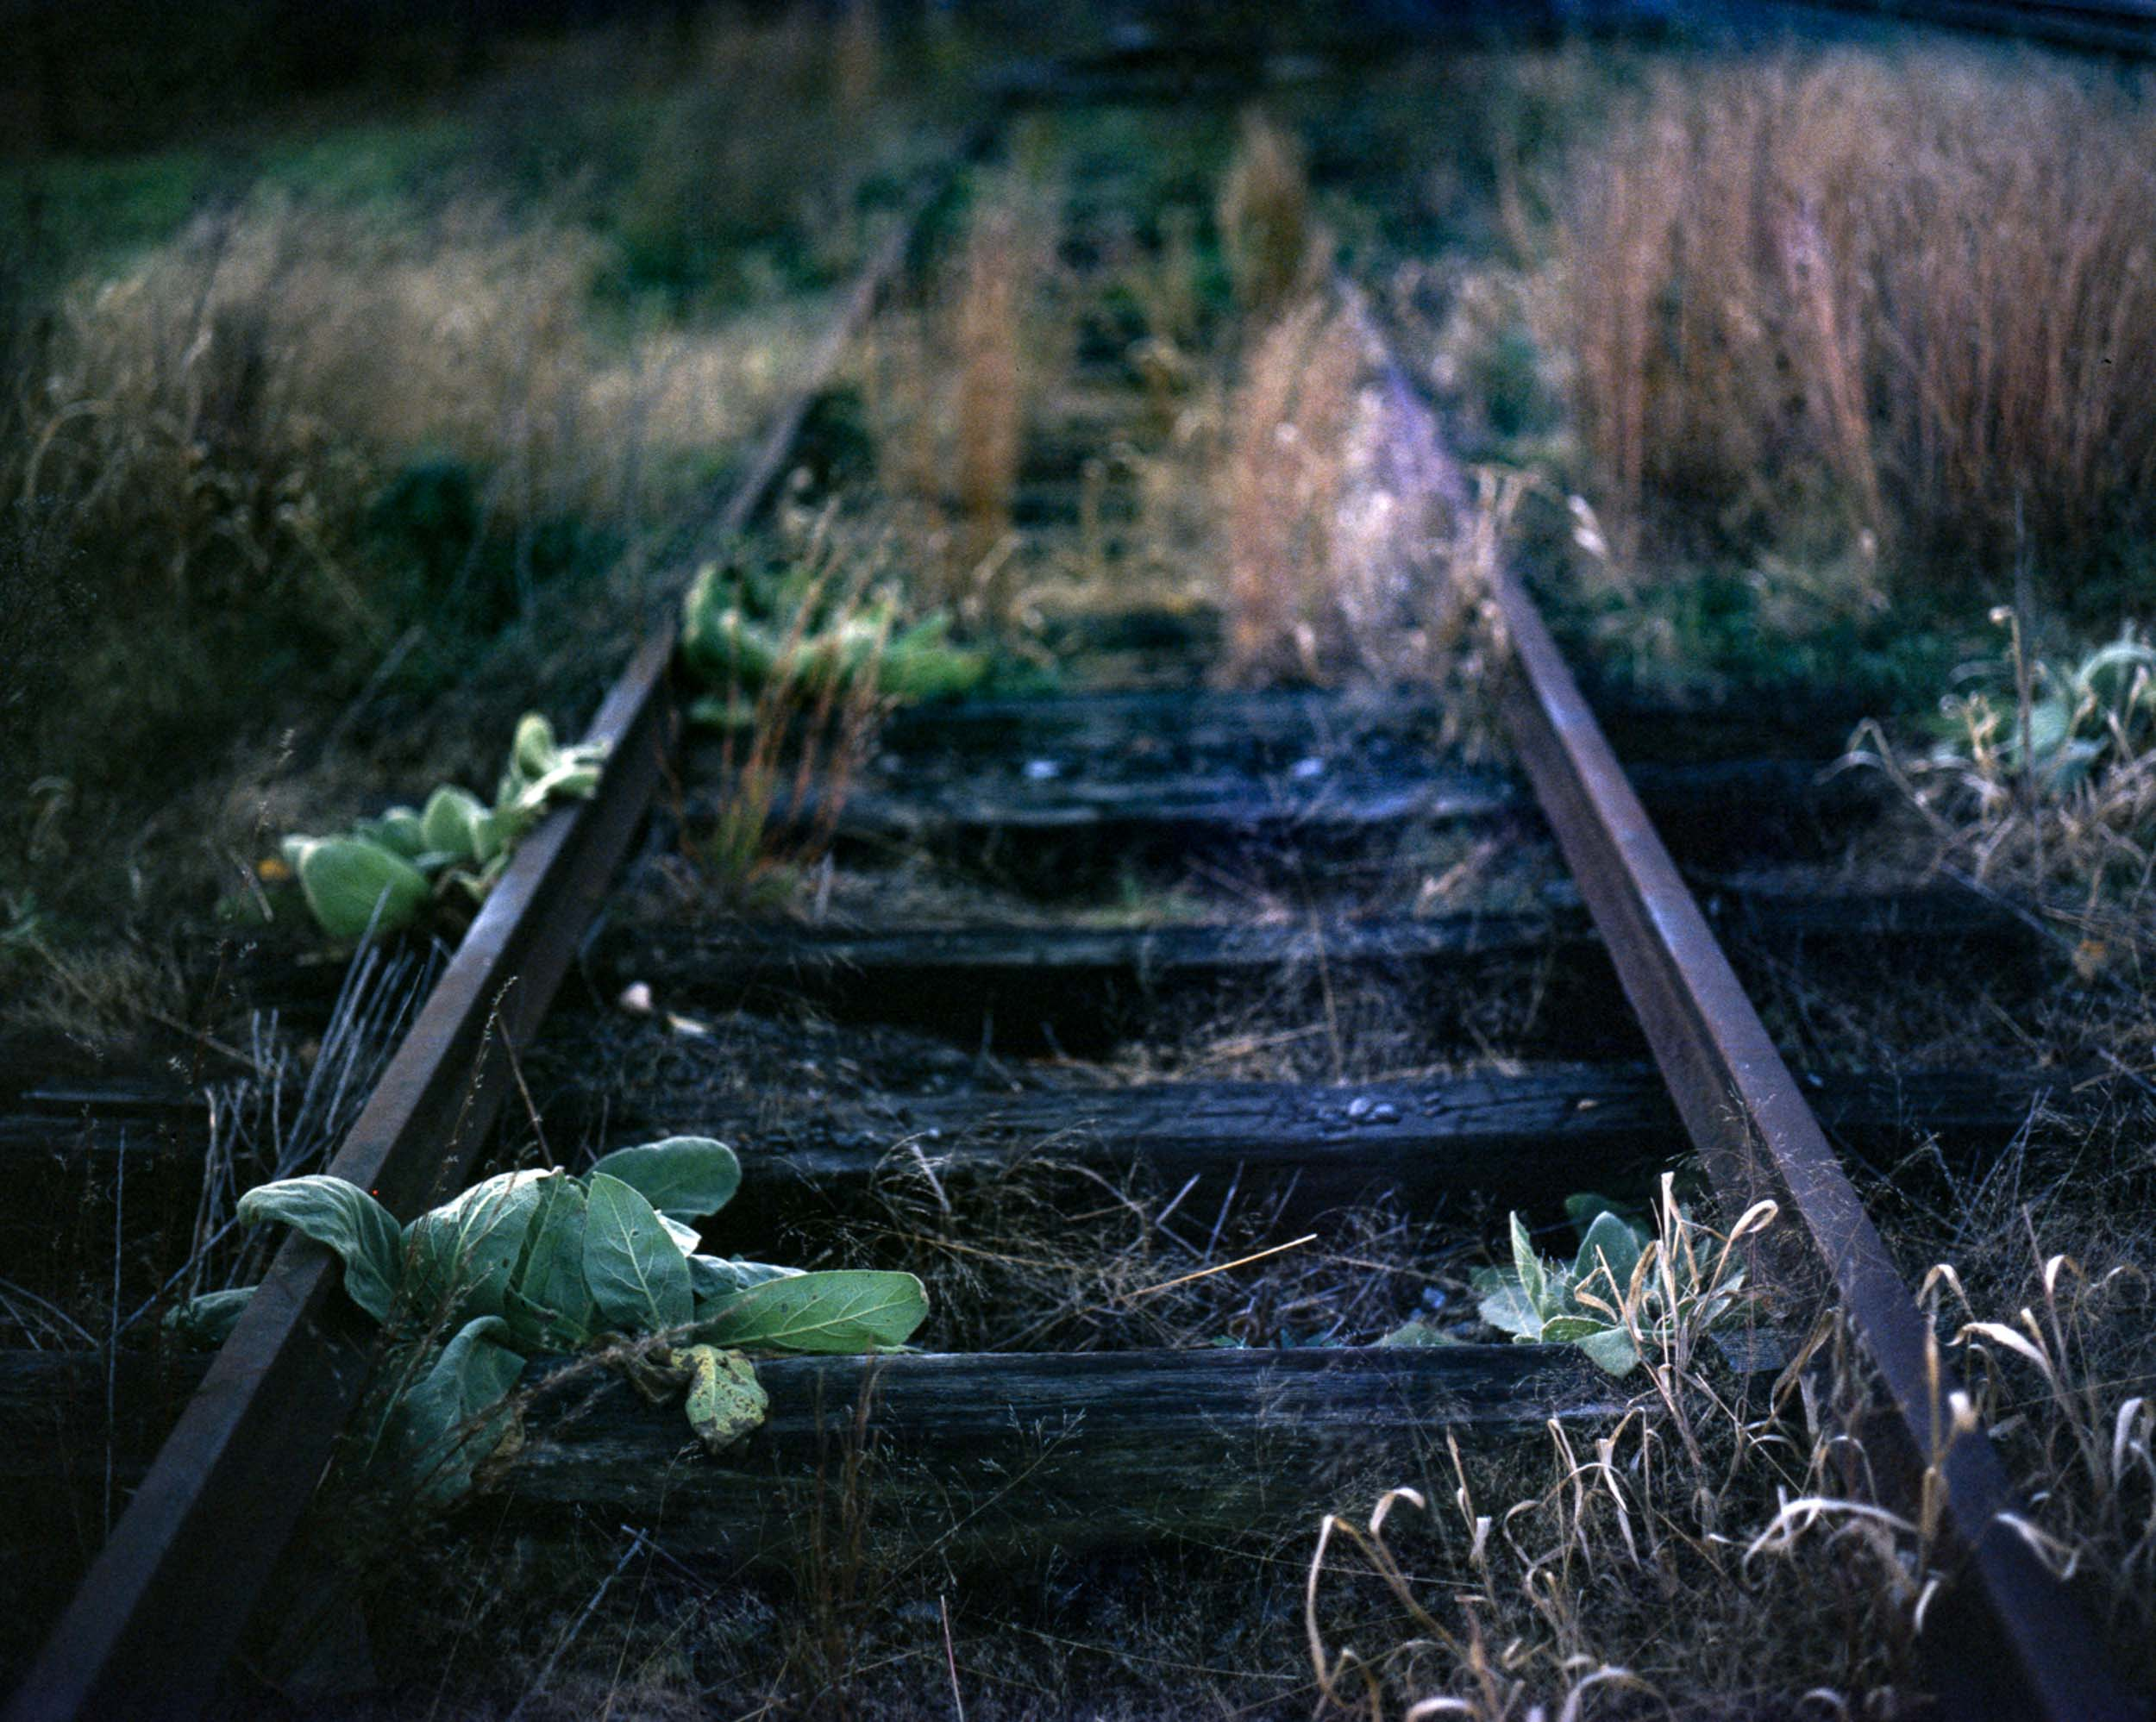 Some of my fondest memories as a child were walking along our towns numerous abandoned train tracks with my grand father, looking for loose rail road spikes to take home as a souvenir.